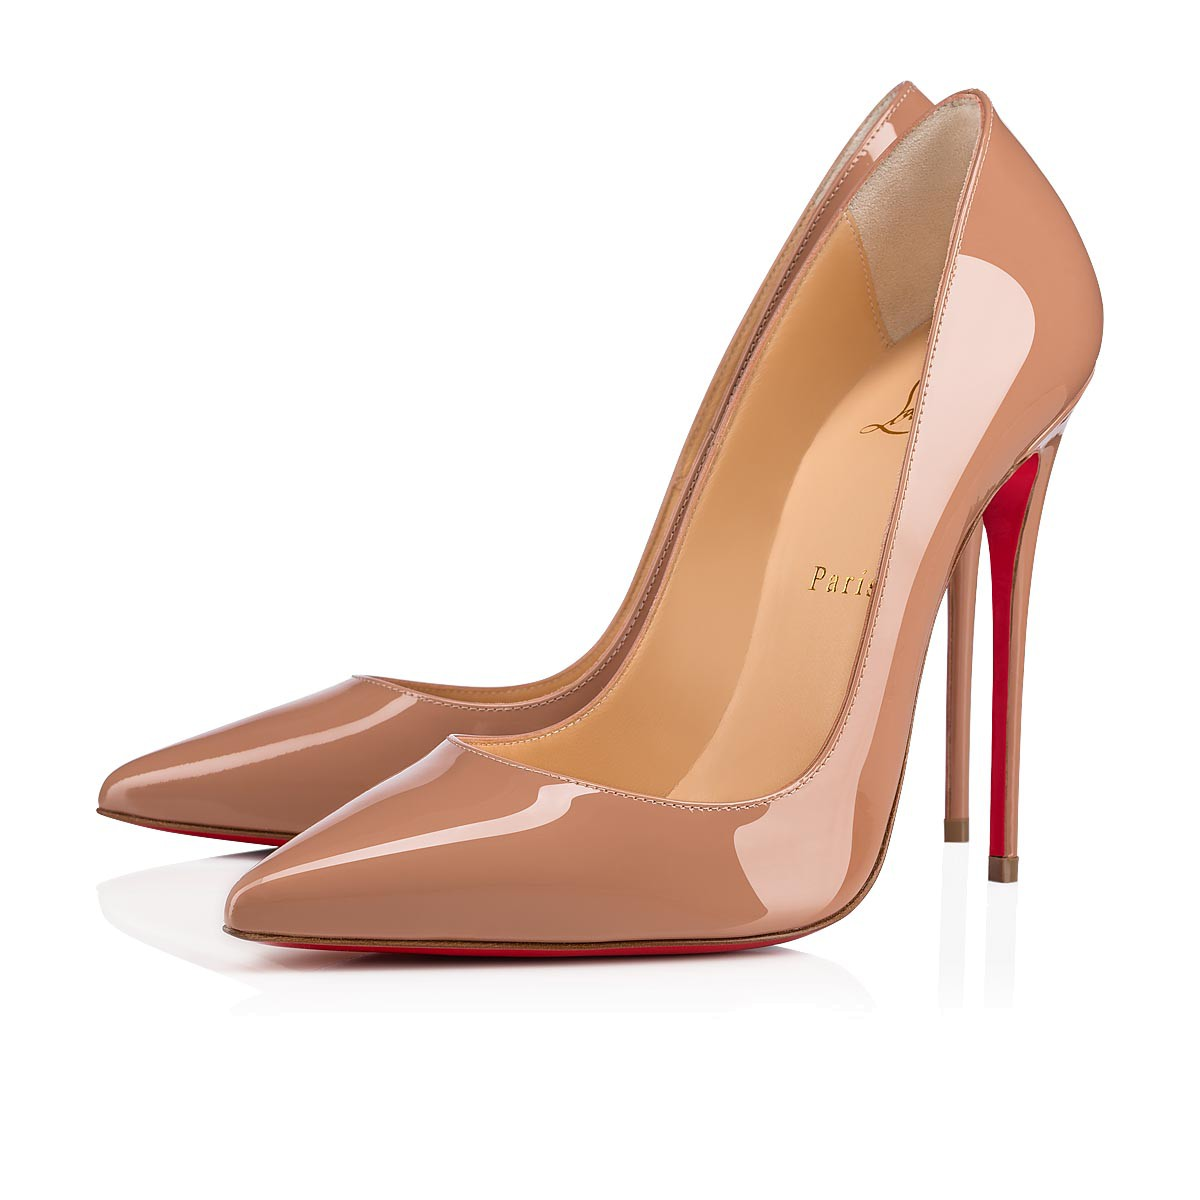 ea8345071c7 So Kate 120 Nude Patent Leather - Women Shoes - Christian Louboutin